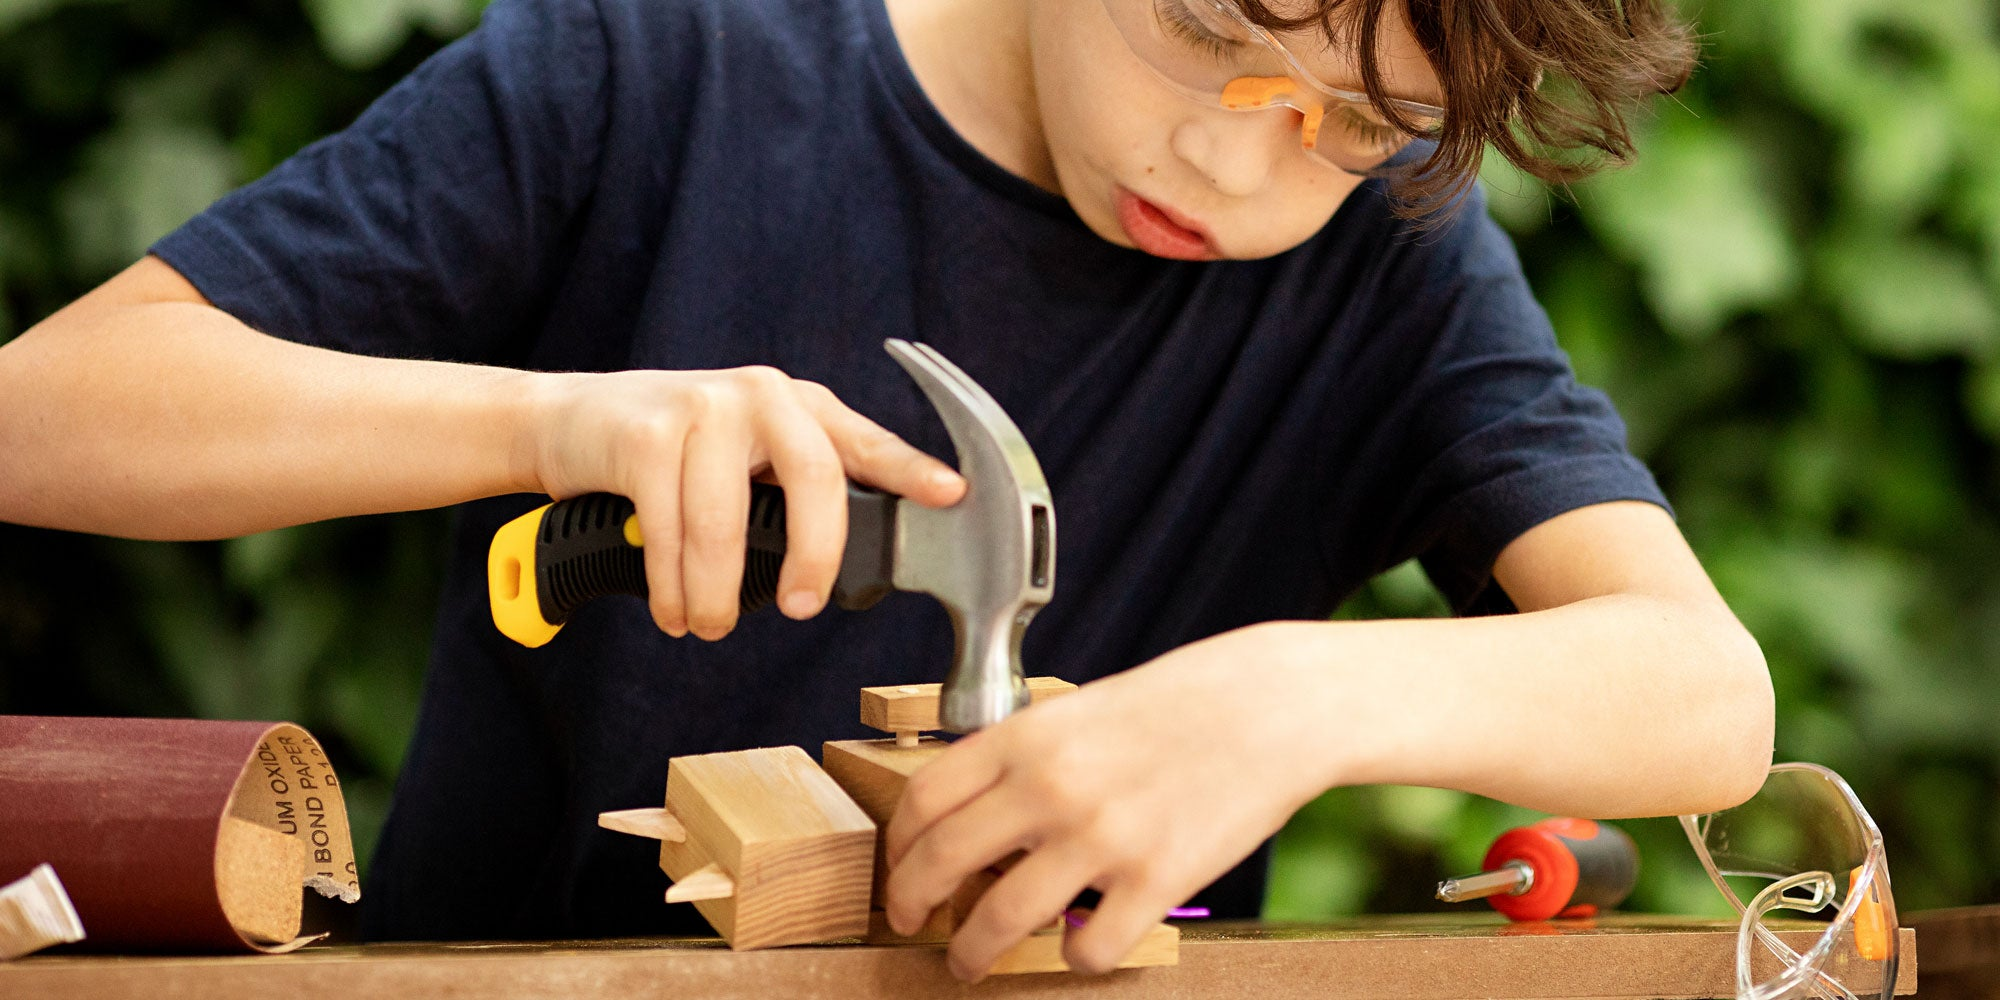 Why you should buy 'real' woodworking tools for kids